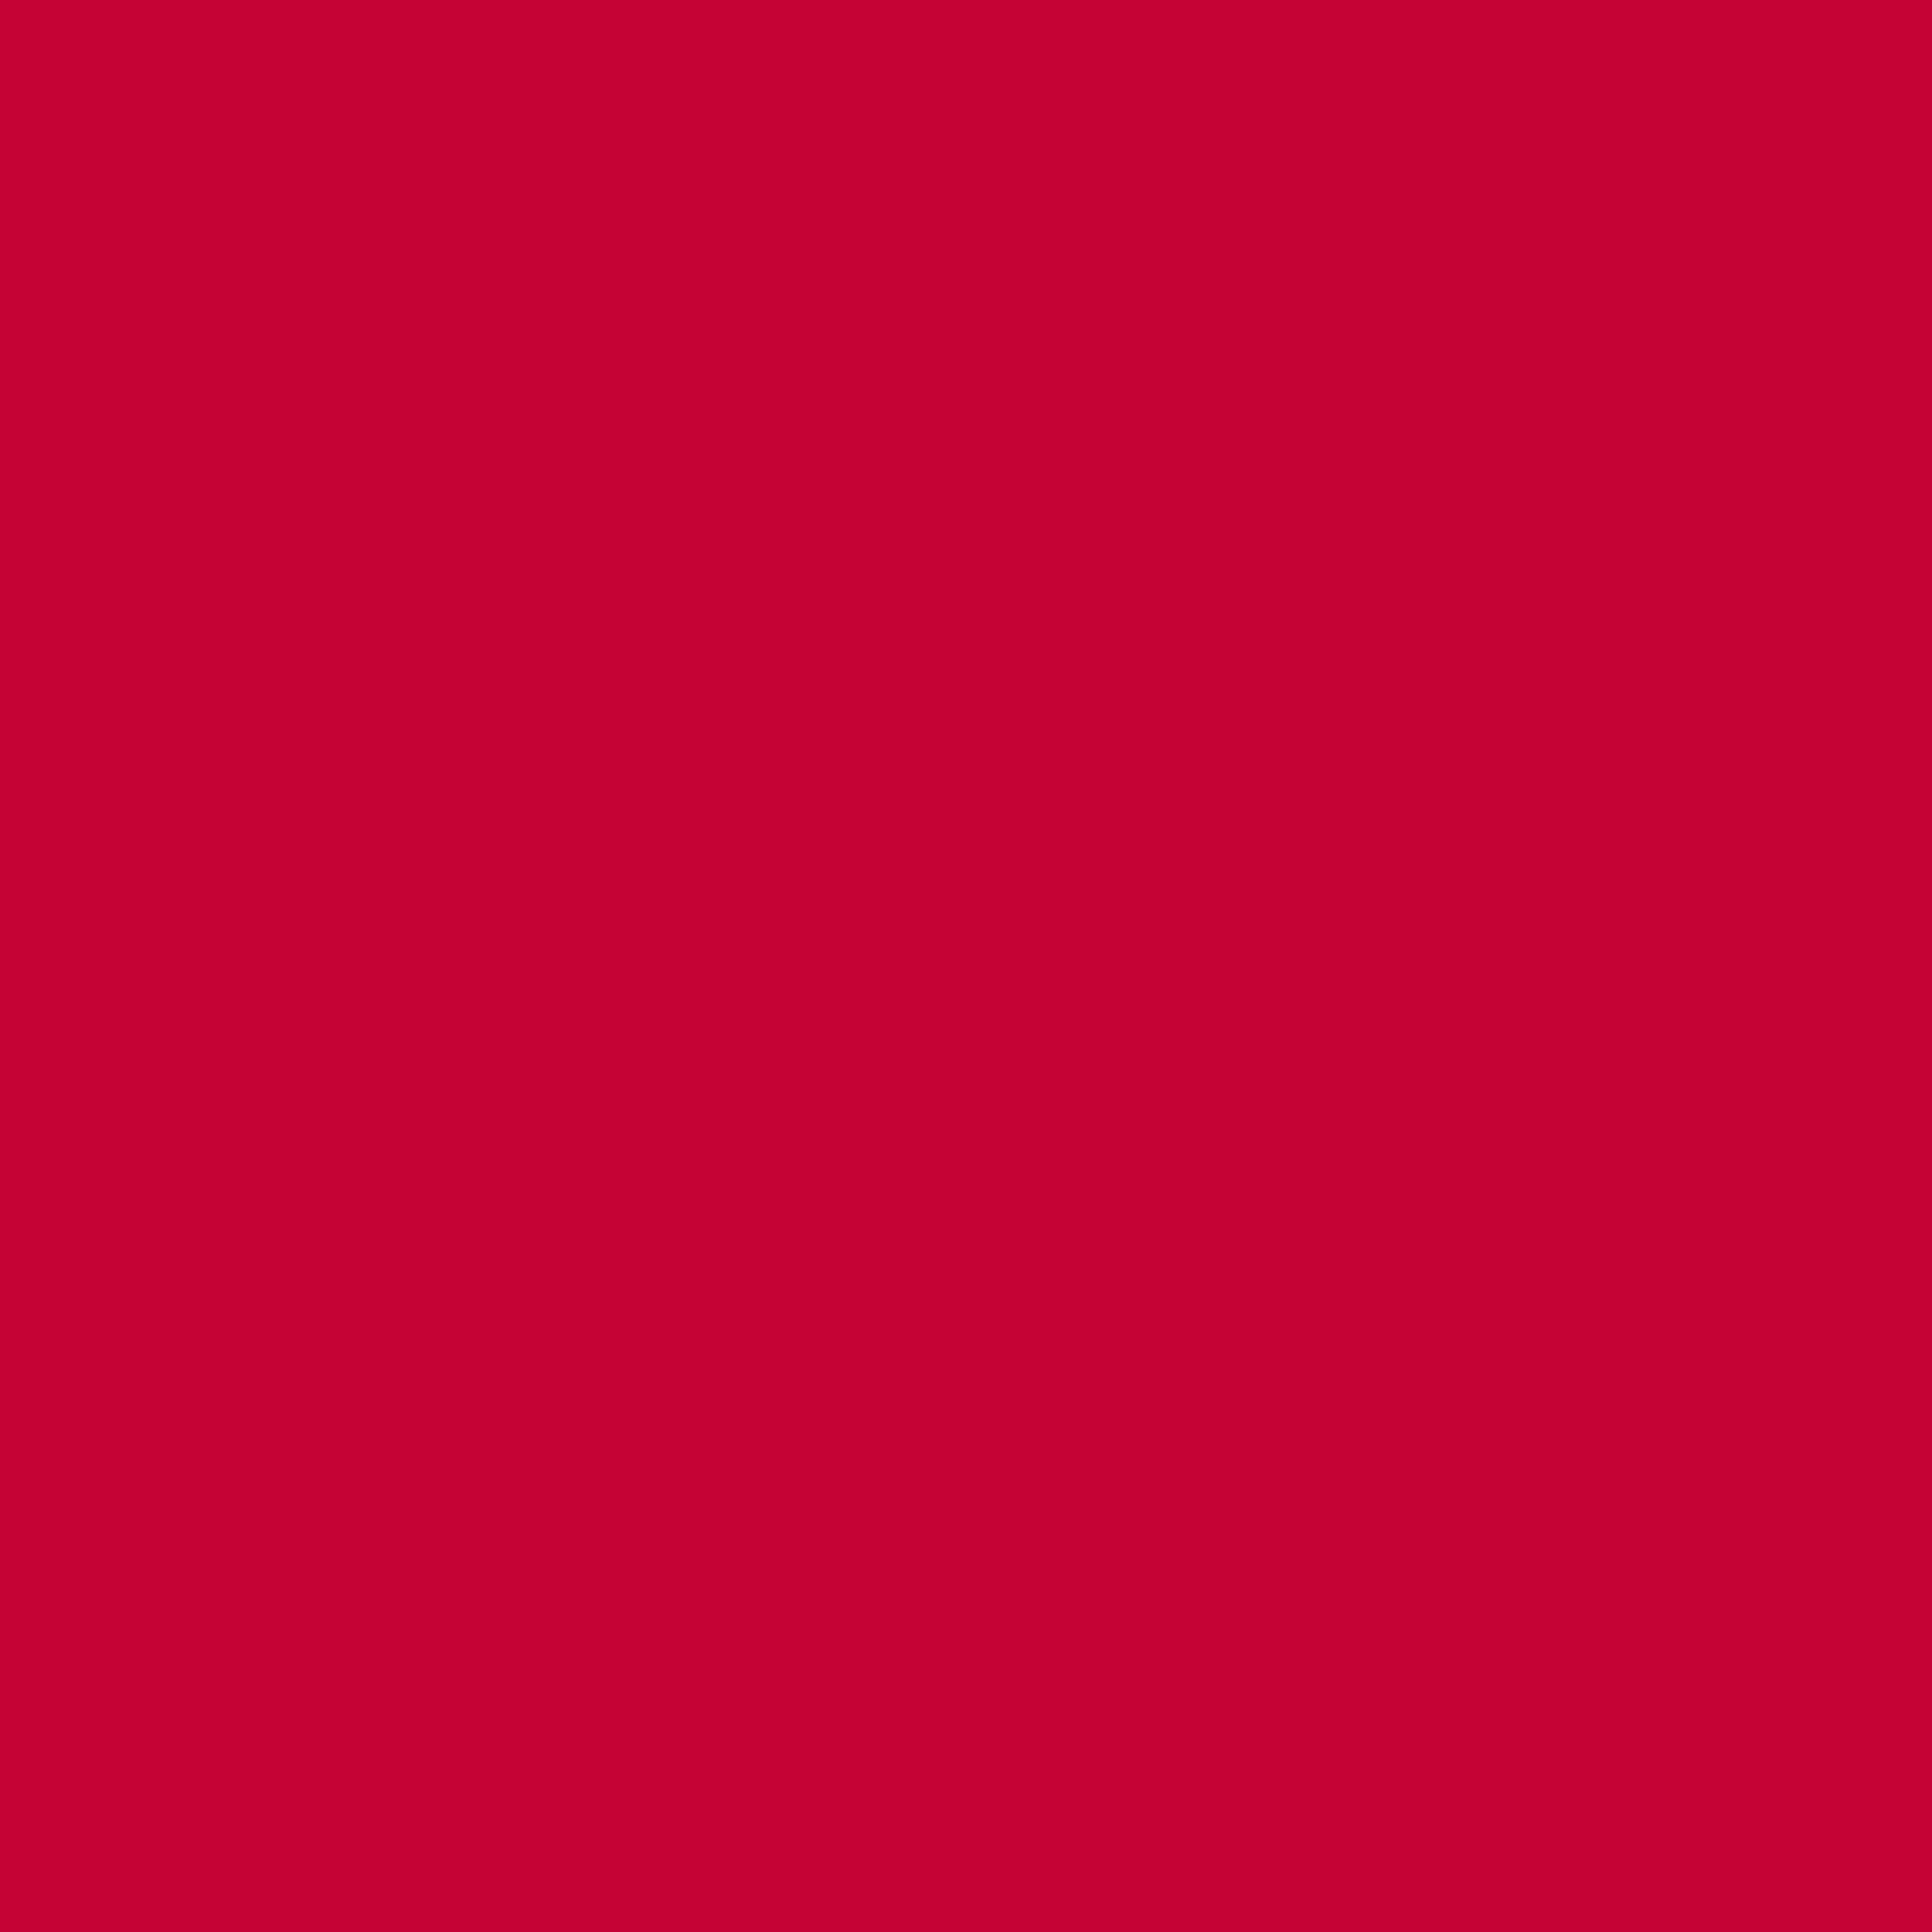 2732x2732 Red NCS Solid Color Background